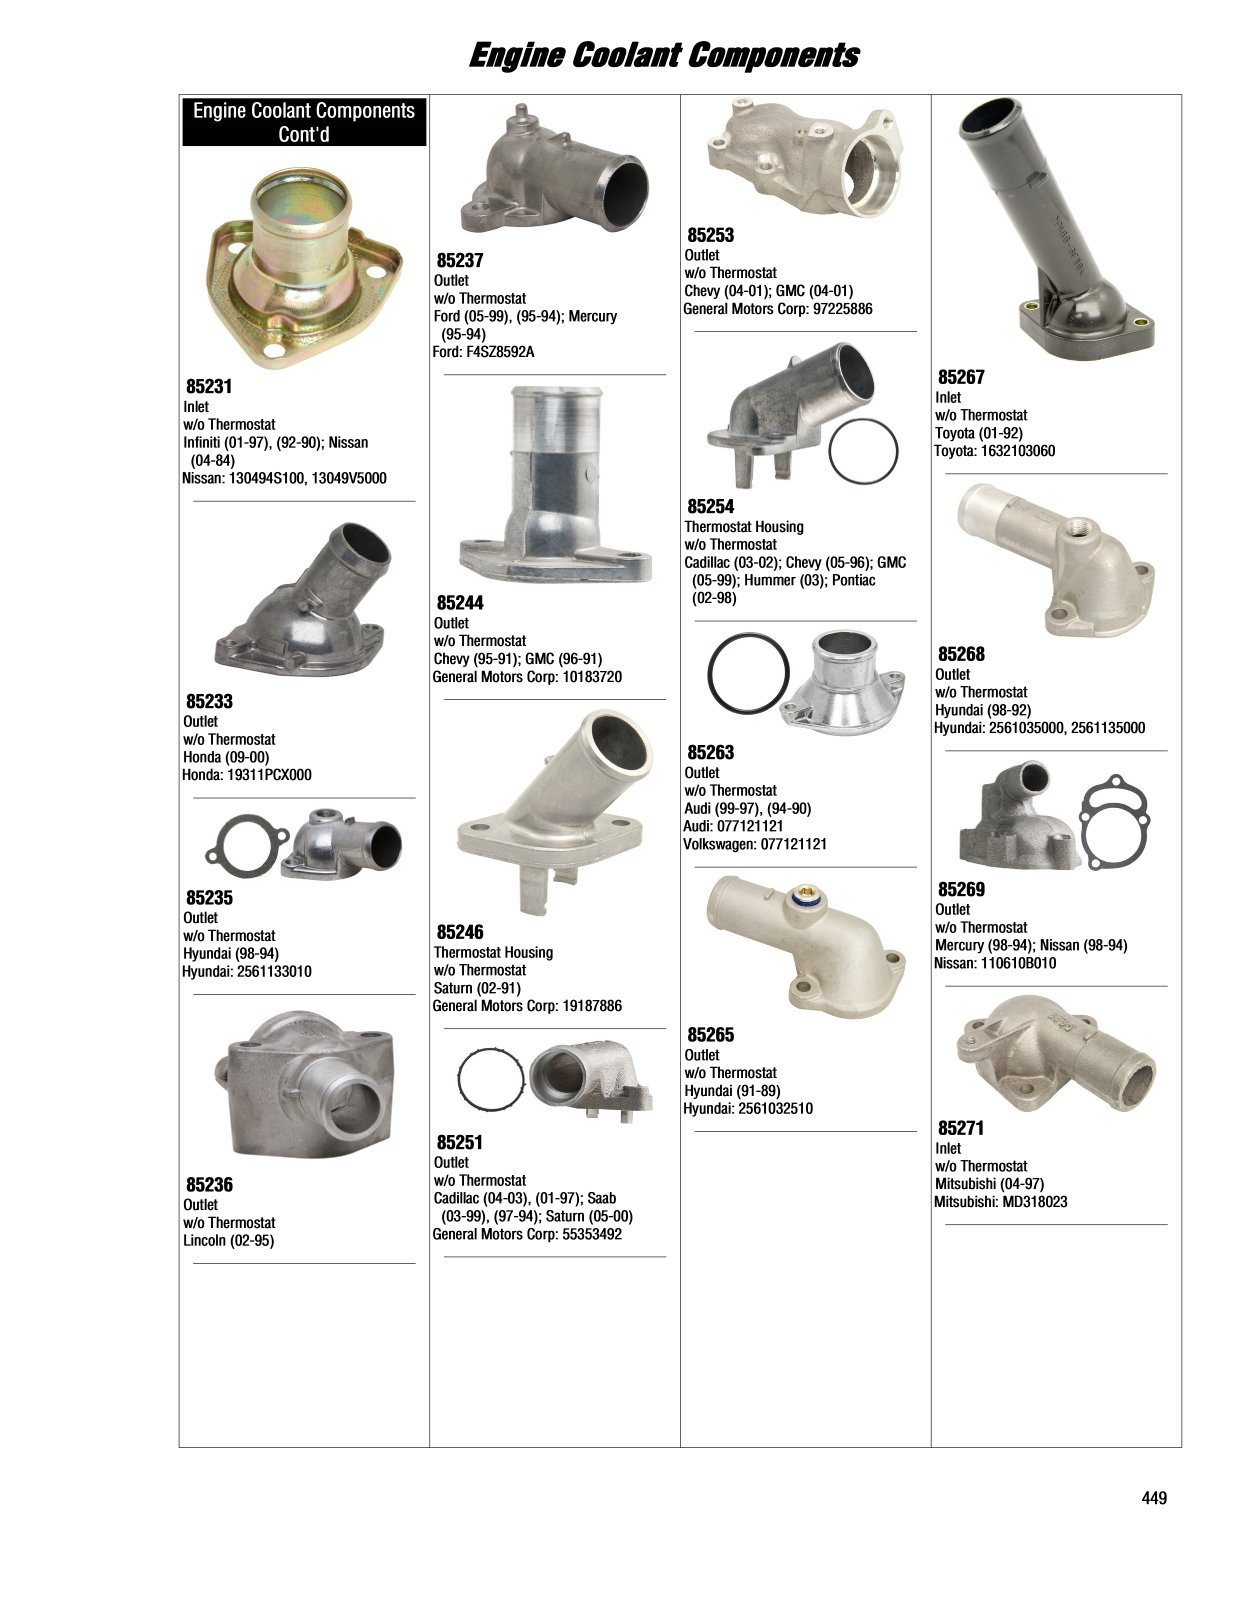 2017 Illustrated Guide Page 449 Engine Coolant Components General